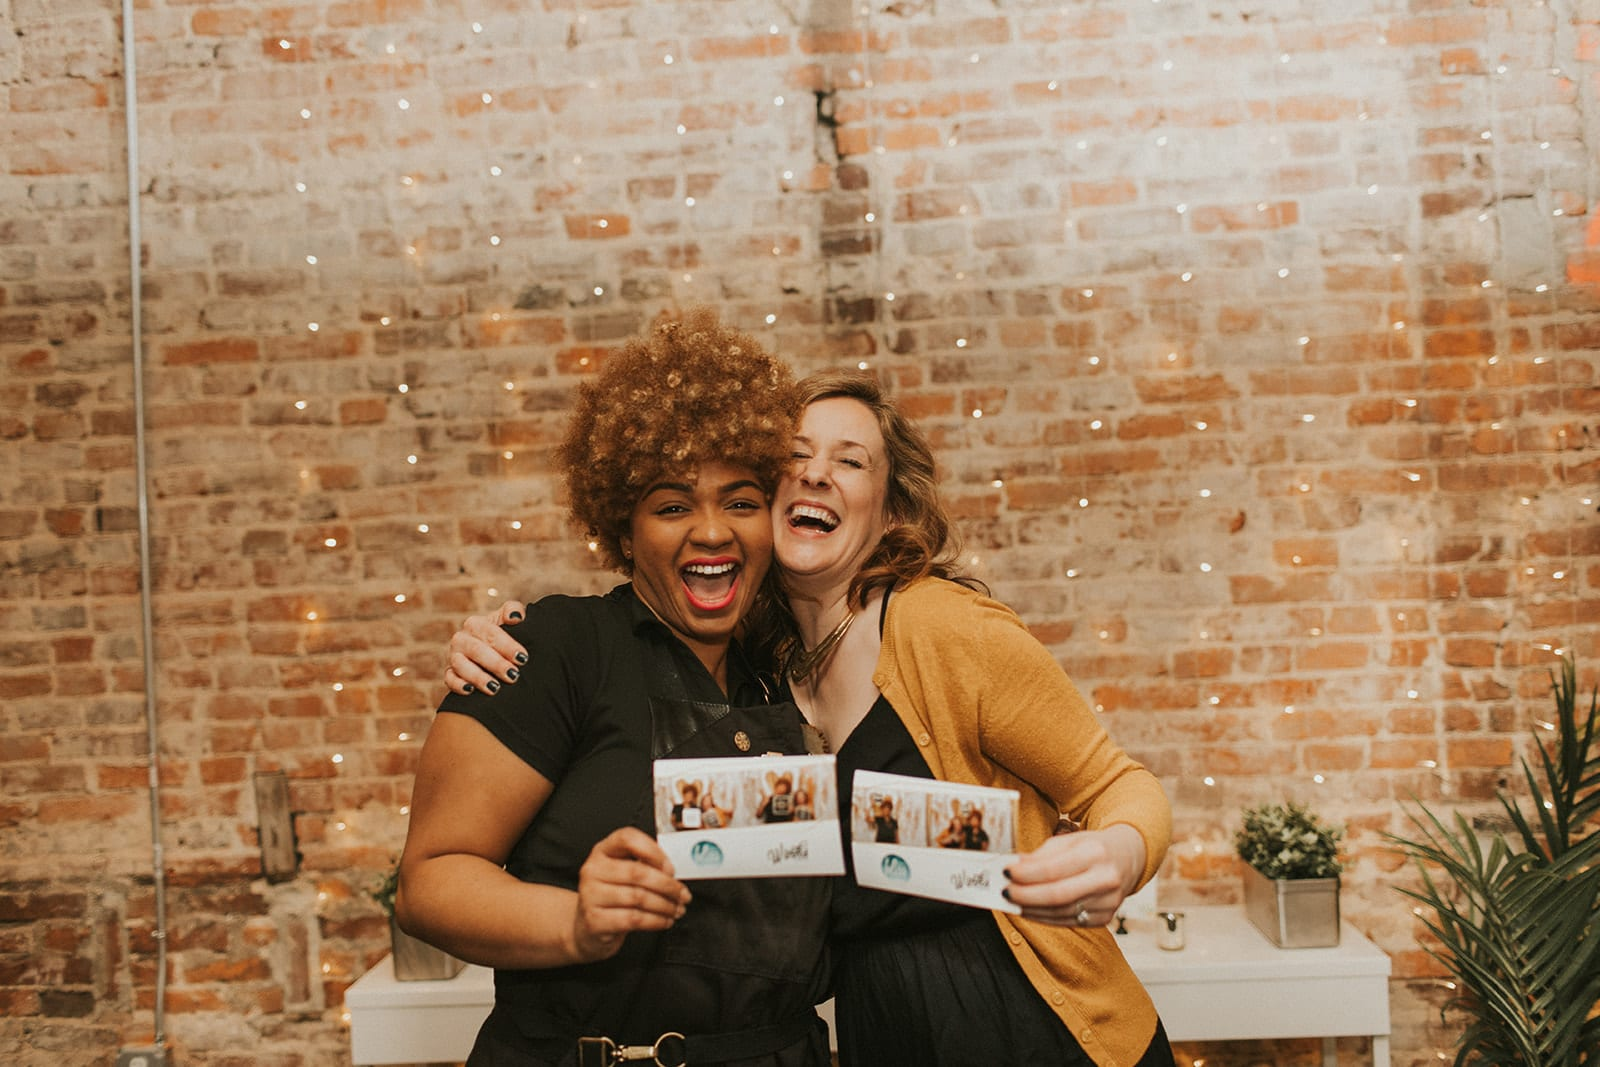 Shelly Pate Photography captured this candid photograph of Sara, owner of District Bliss, and Chrissy, owner of Charismatic Creations, holding their Winks Photo Booth pictures and laughing at The Gallery at Elevate in DC